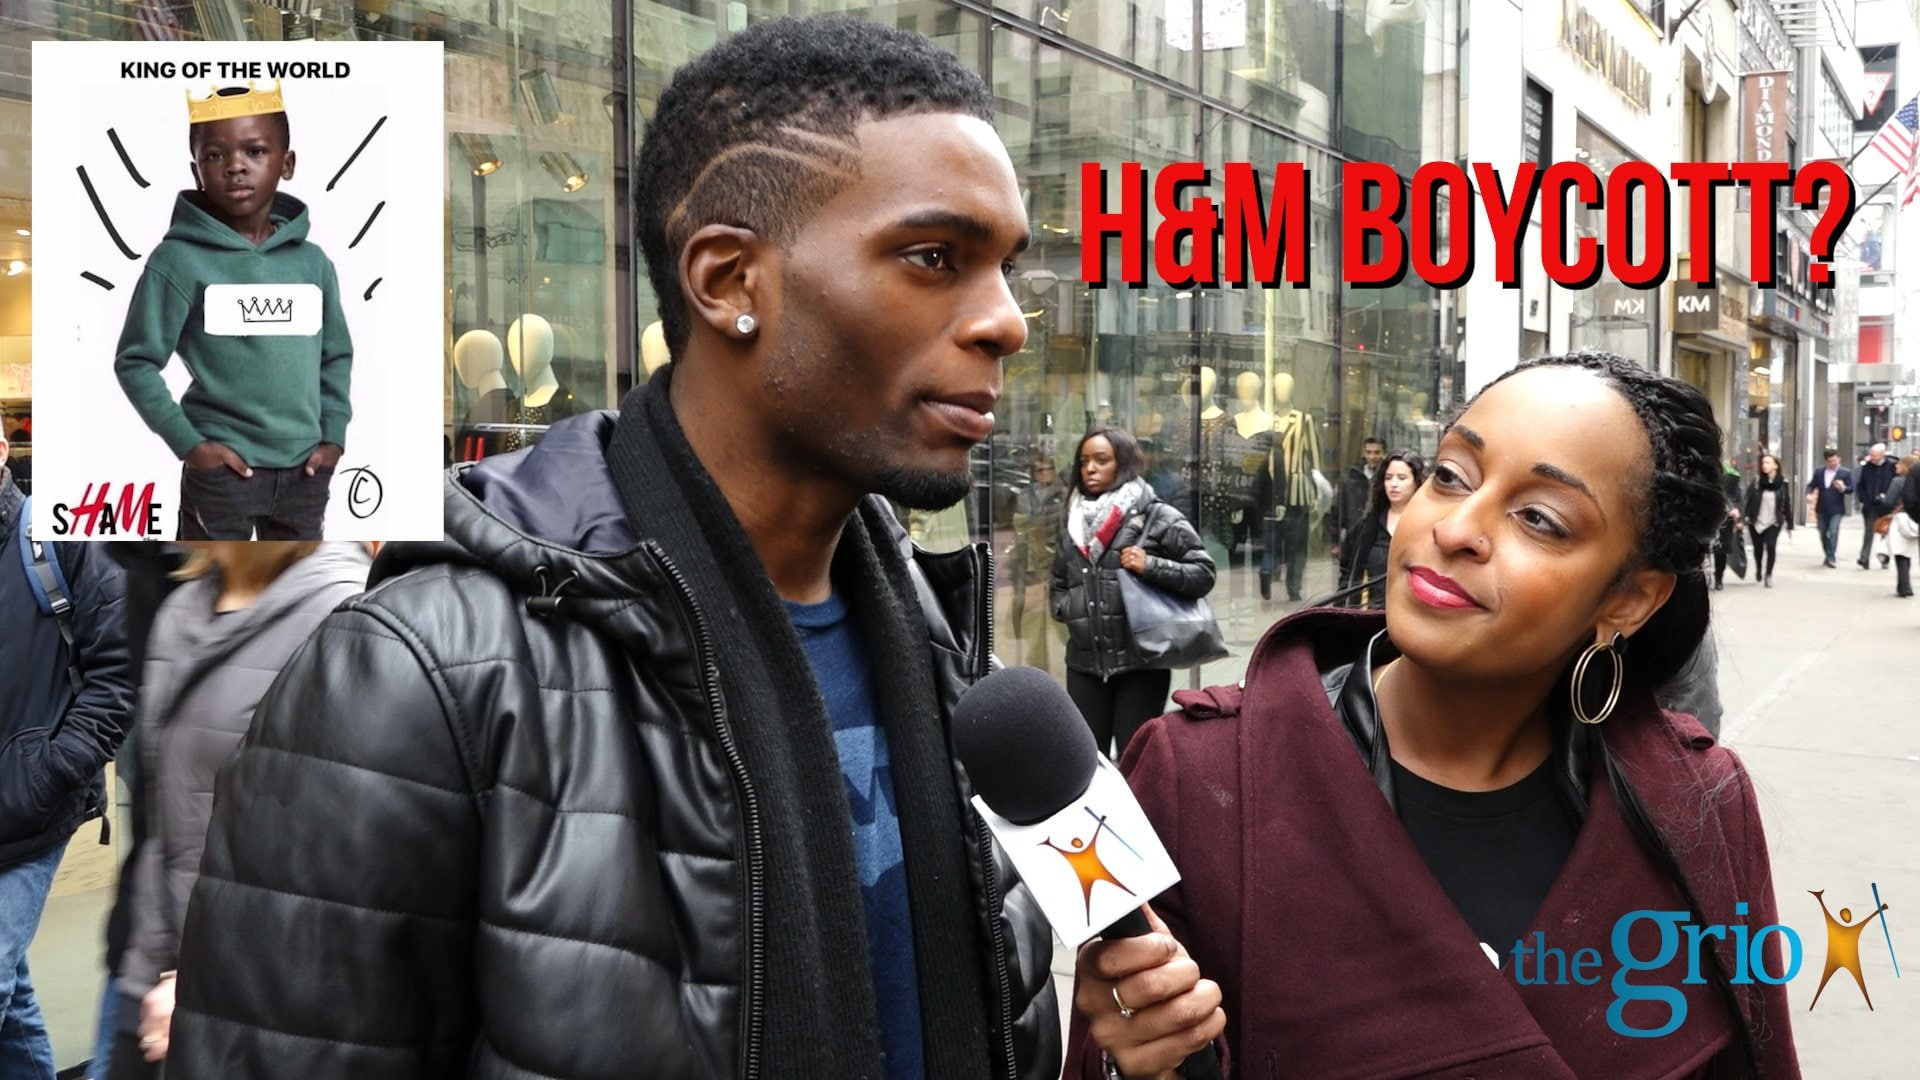 652e73a83 Are black people actually going to boycott H&M? These folks say